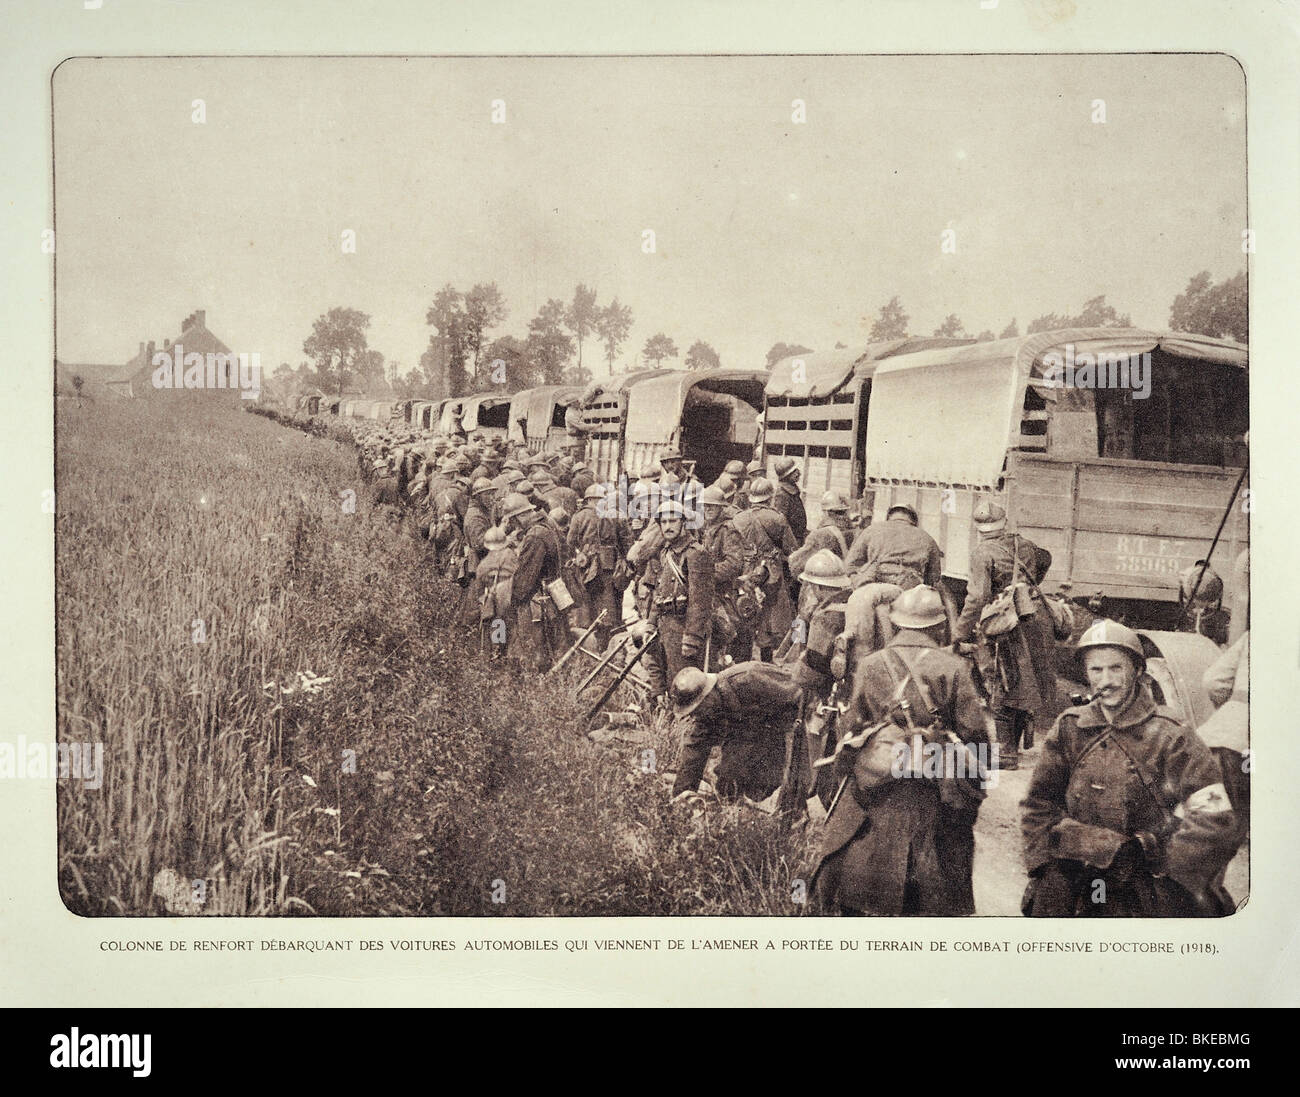 Trucks and WWI soldiers of reinforcement convoy heading for battlefield in West Flanders during First World War - Stock Image